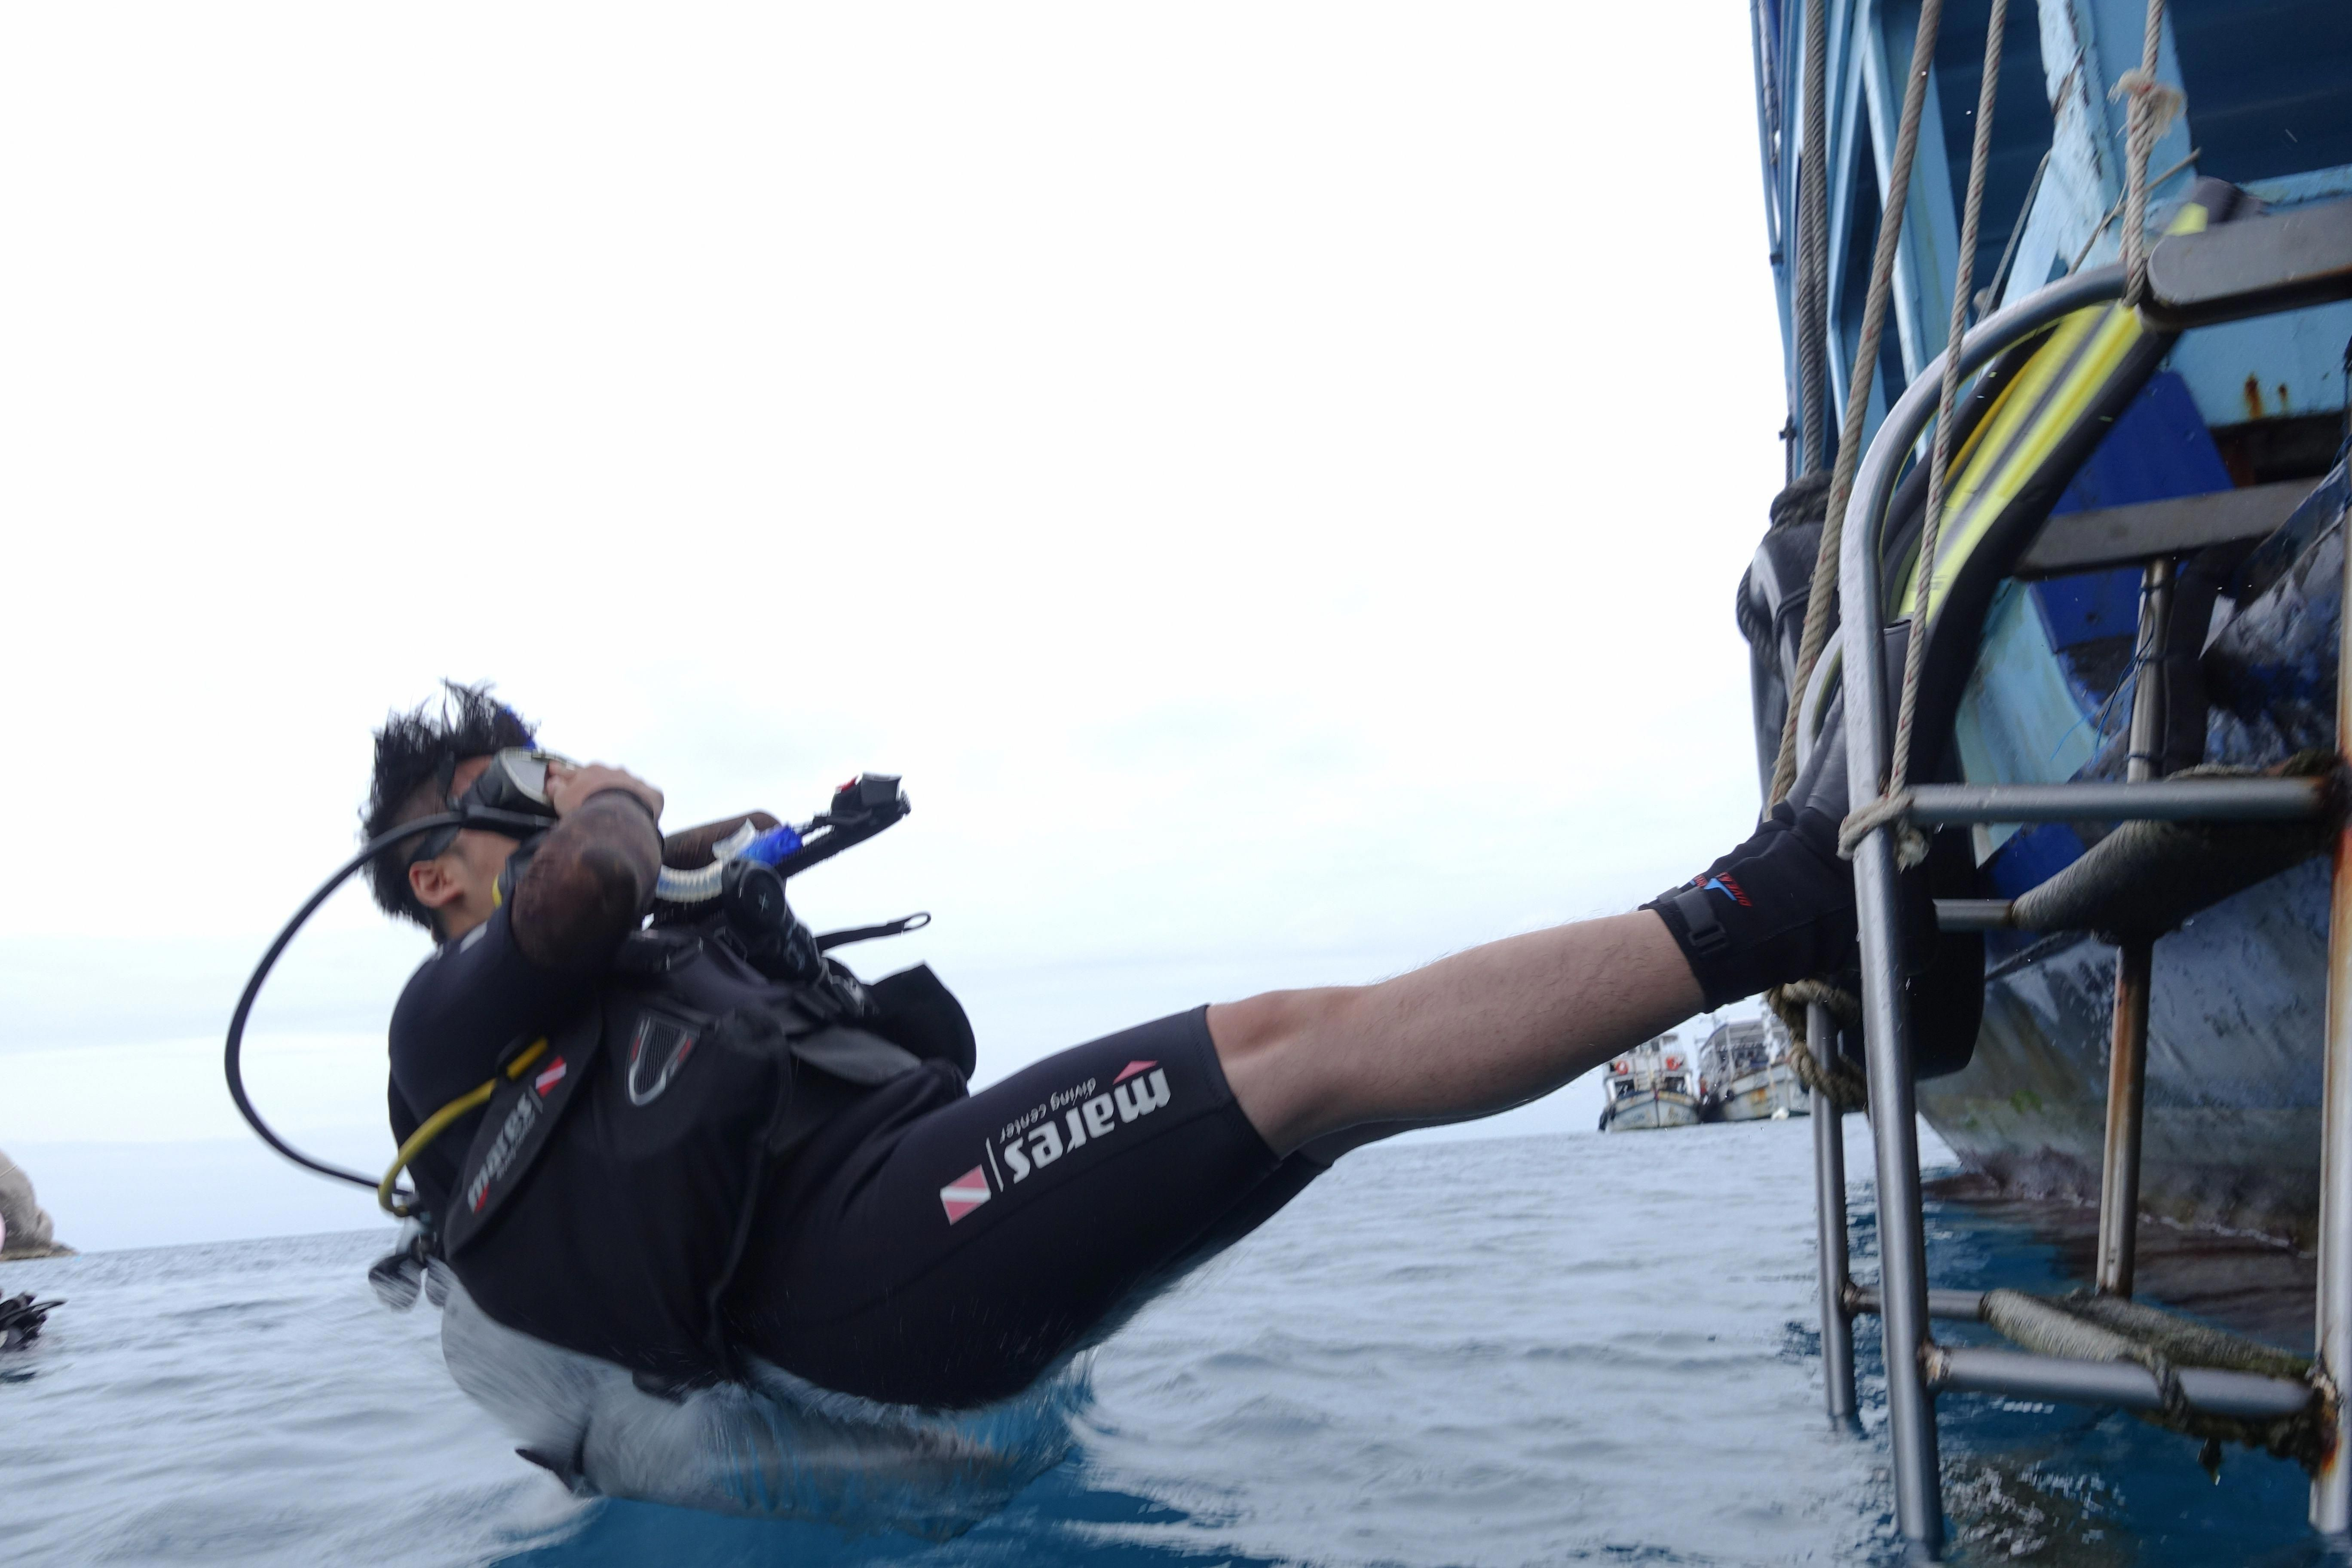 Get Your Padi At Crystal Dive Koh Tao The Padi Open Water Diver Course Is The World S Most Popular Scuba Diving Training Course Scuba Diving Diving Cave Diving